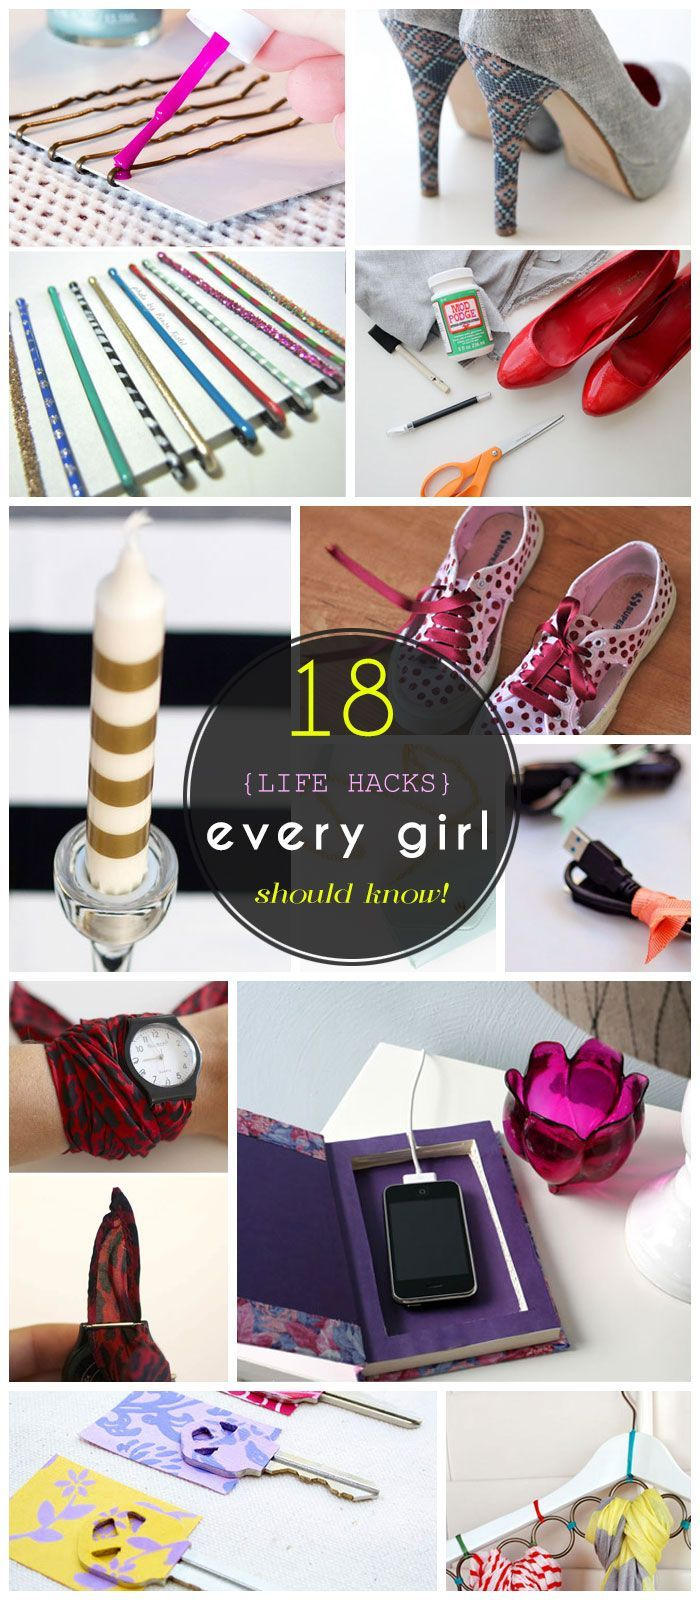 40 Amazing Life Hacks Every Girl Should Know Diy Home Crafts